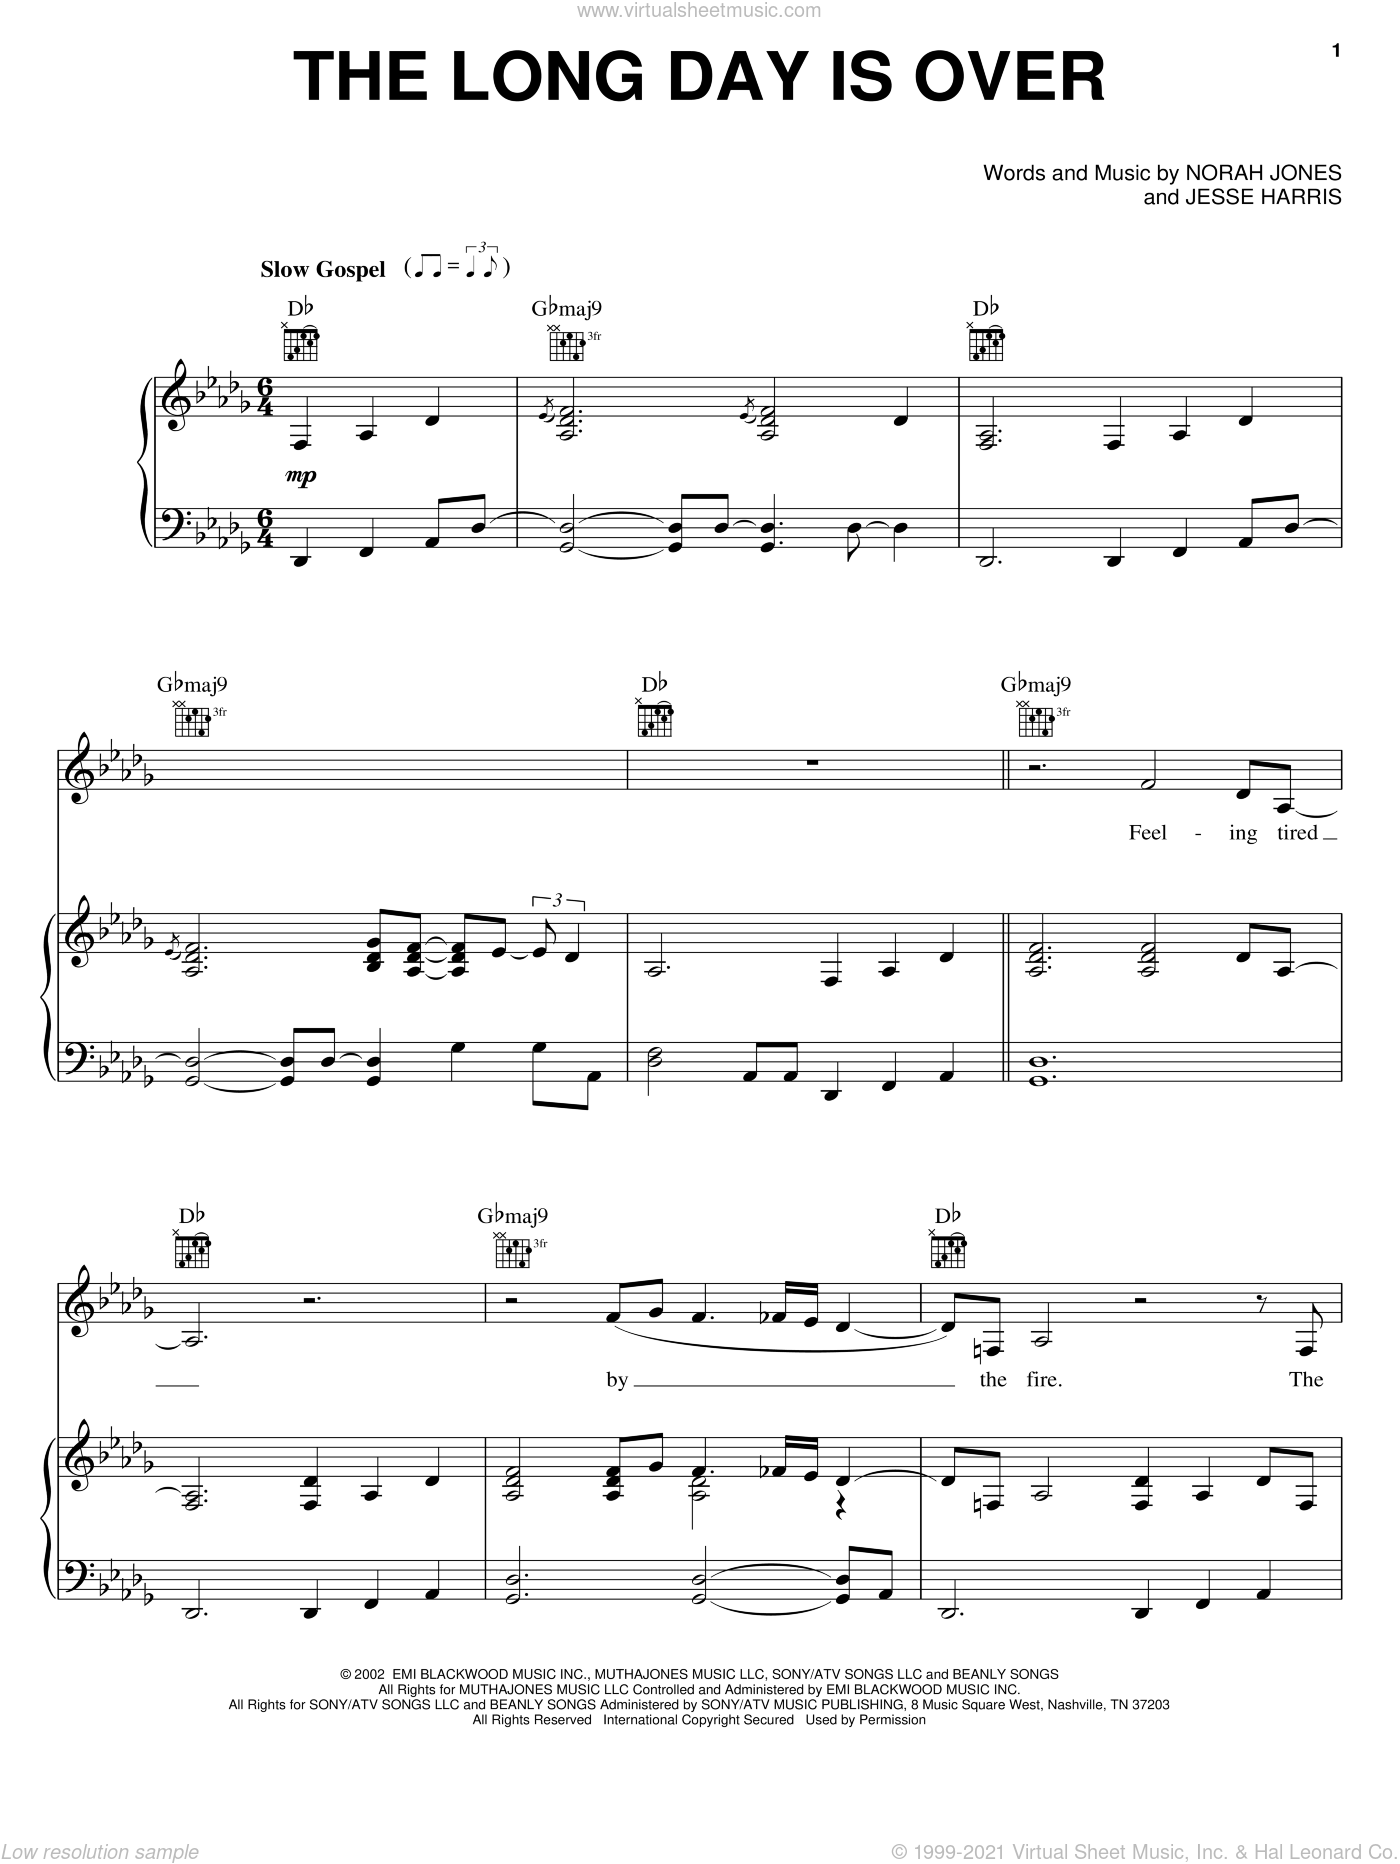 The Long Day Is Over sheet music for voice, piano or guitar by Norah Jones and Jesse Harris, intermediate skill level